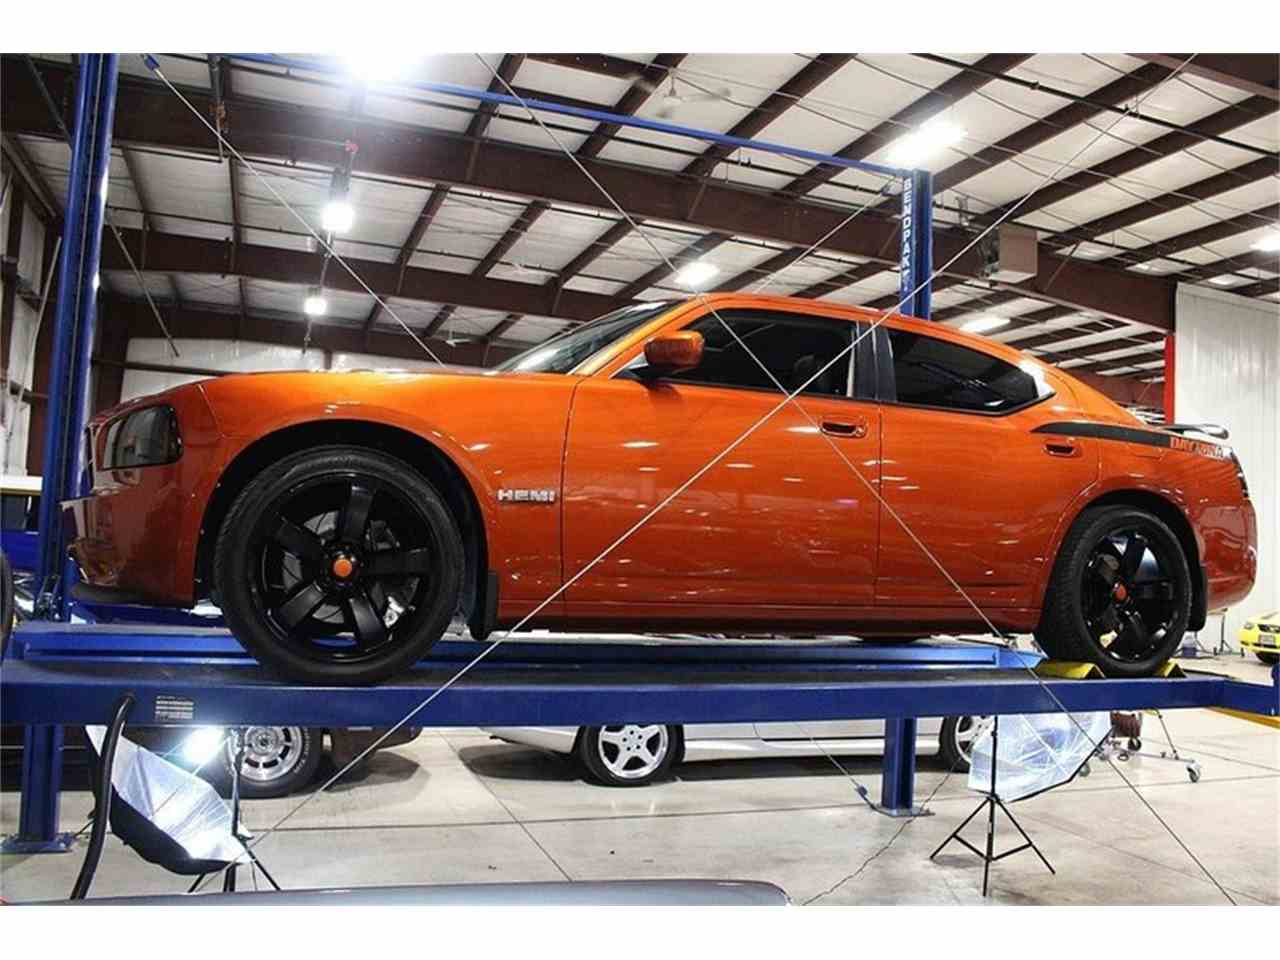 All Types 2006 charger daytona : 2006 Dodge Charger for Sale | ClassicCars.com | CC-975271